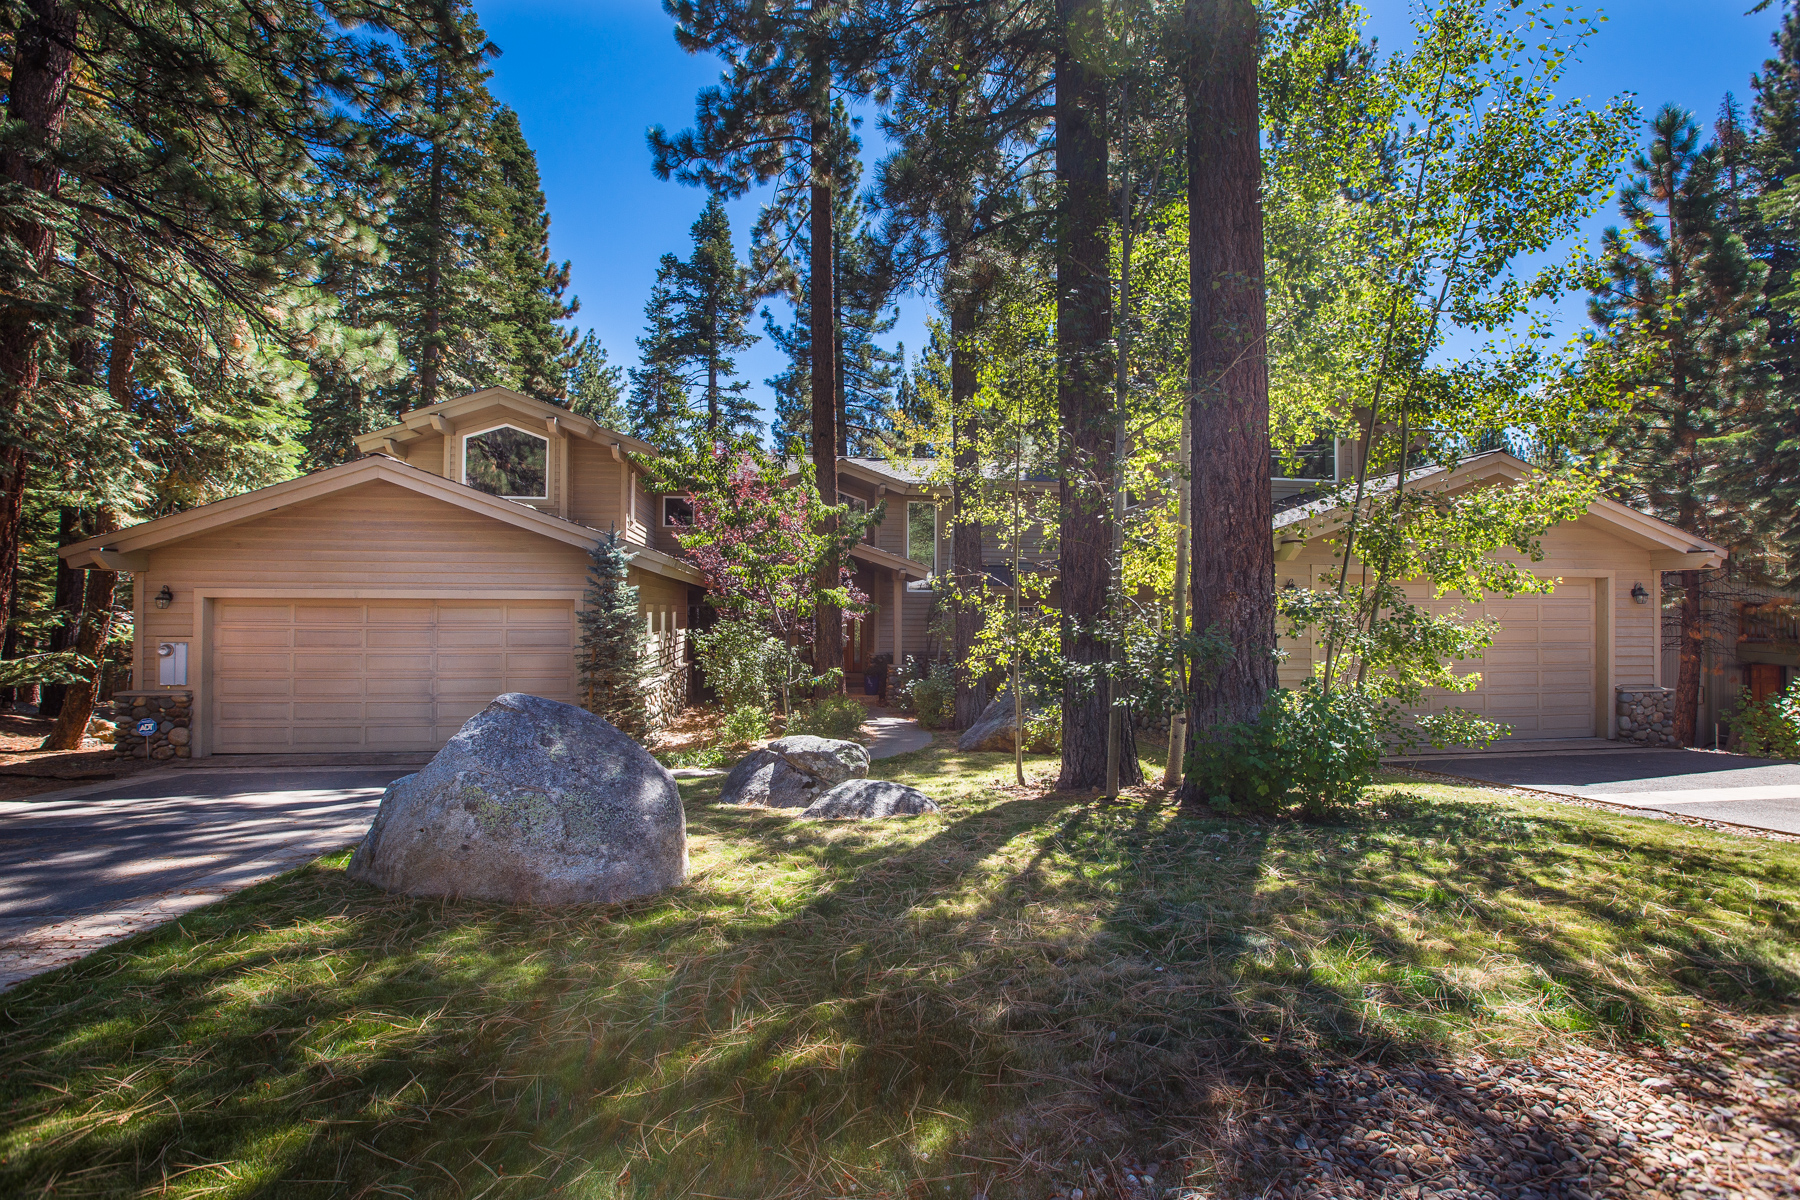 Maison unifamiliale pour l Vente à 881 South Dyer Incline Village, Nevada, 89451 Lake Tahoe, États-Unis